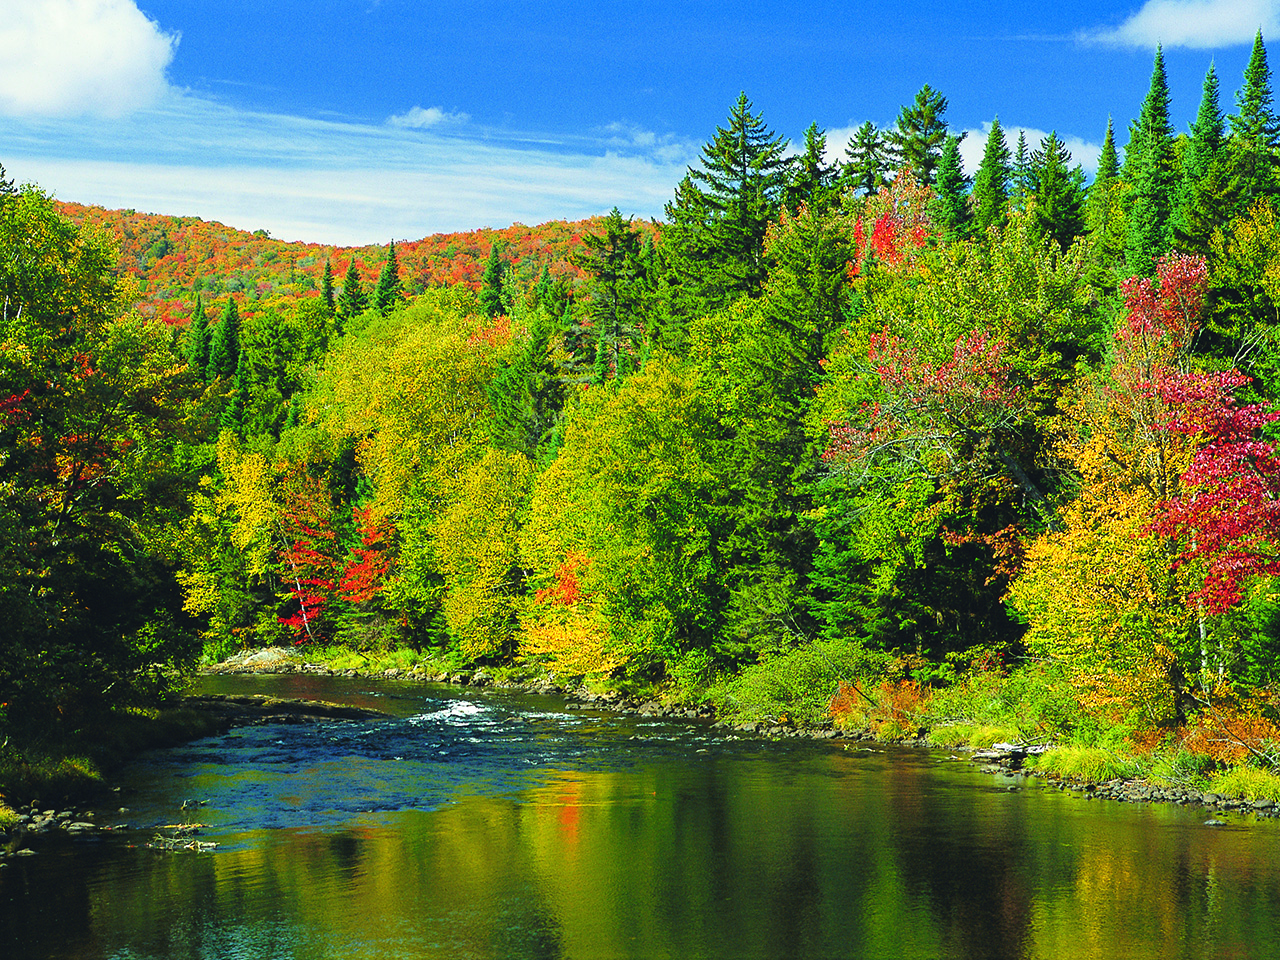 The Best Places To See Fall Colours In Canada | Claine Canada Foliage Map on canada vegetation map, canada smoke map, canada snow map, canada forest map, canada soil map, canada white map, canada weather map, canada landscape map, canada water map, canada animals map, canada blank map, canada tropical map, canada hardiness map, canada beach map, canada green map, canada terrain map, canada fall map, canada fire map, canada geological features map, canada mountains map,